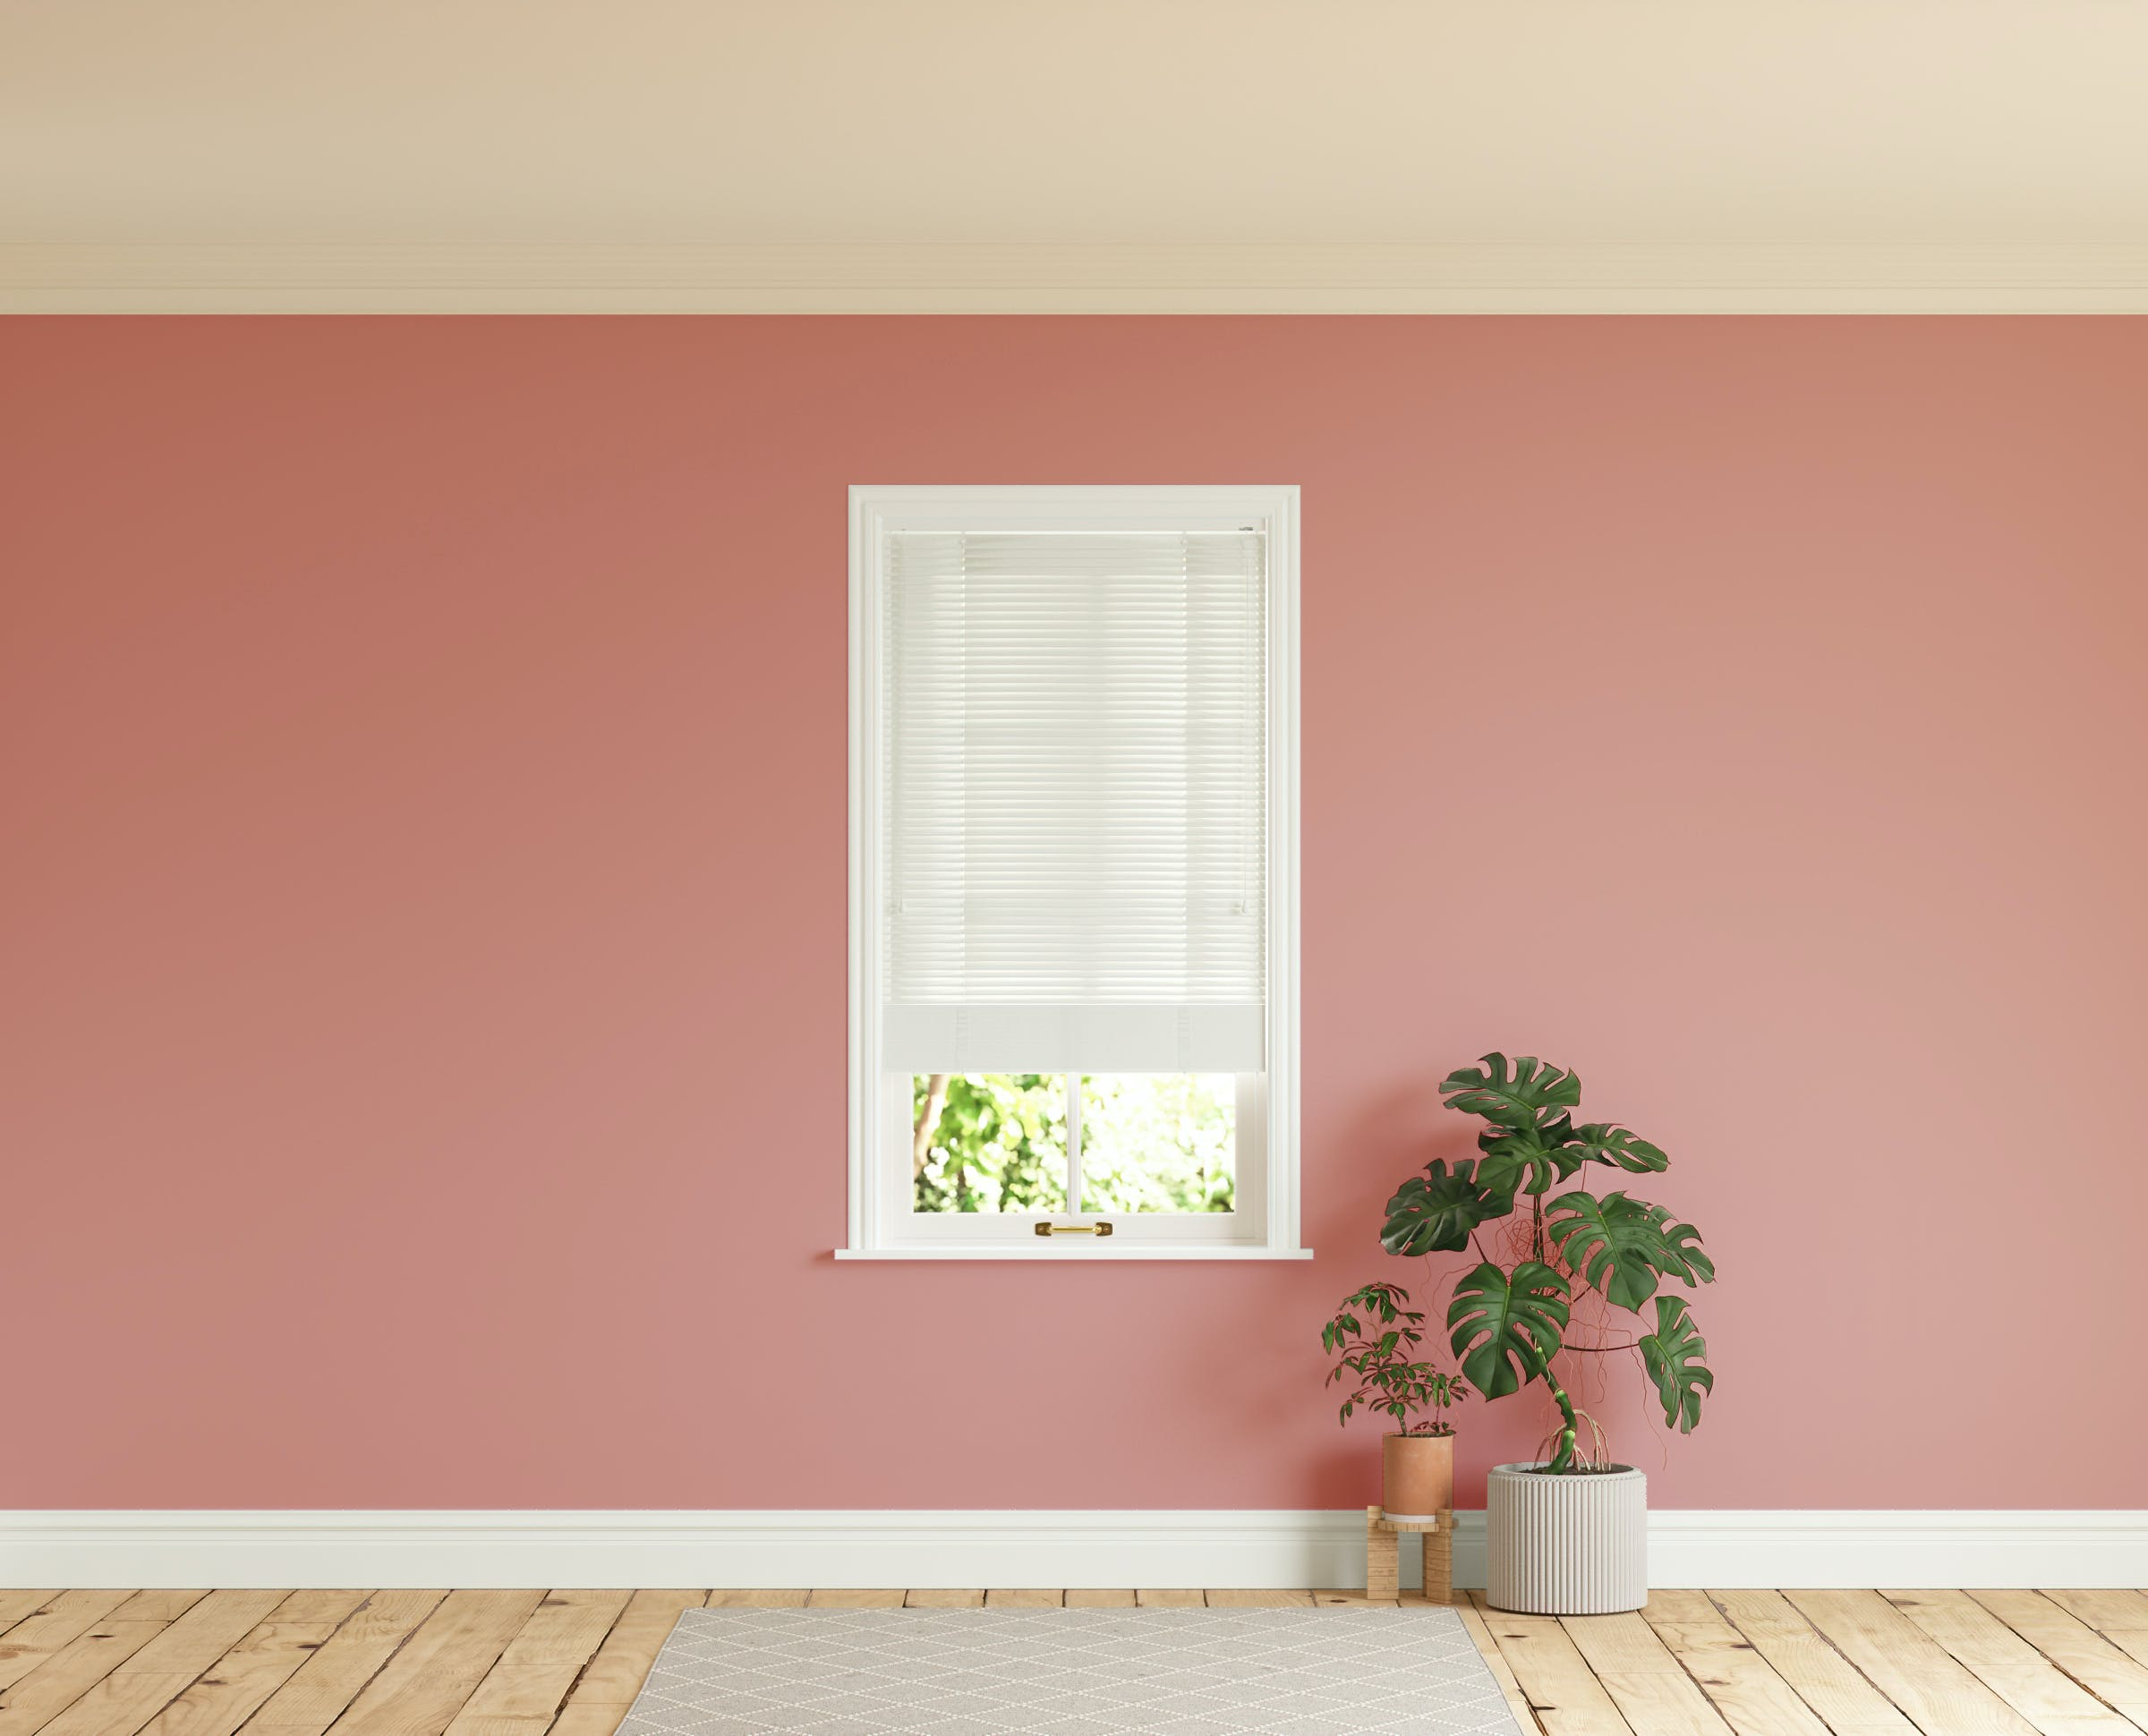 Room with walls painted in Lick Red 03 and White 01 Venetian fine grain blinds